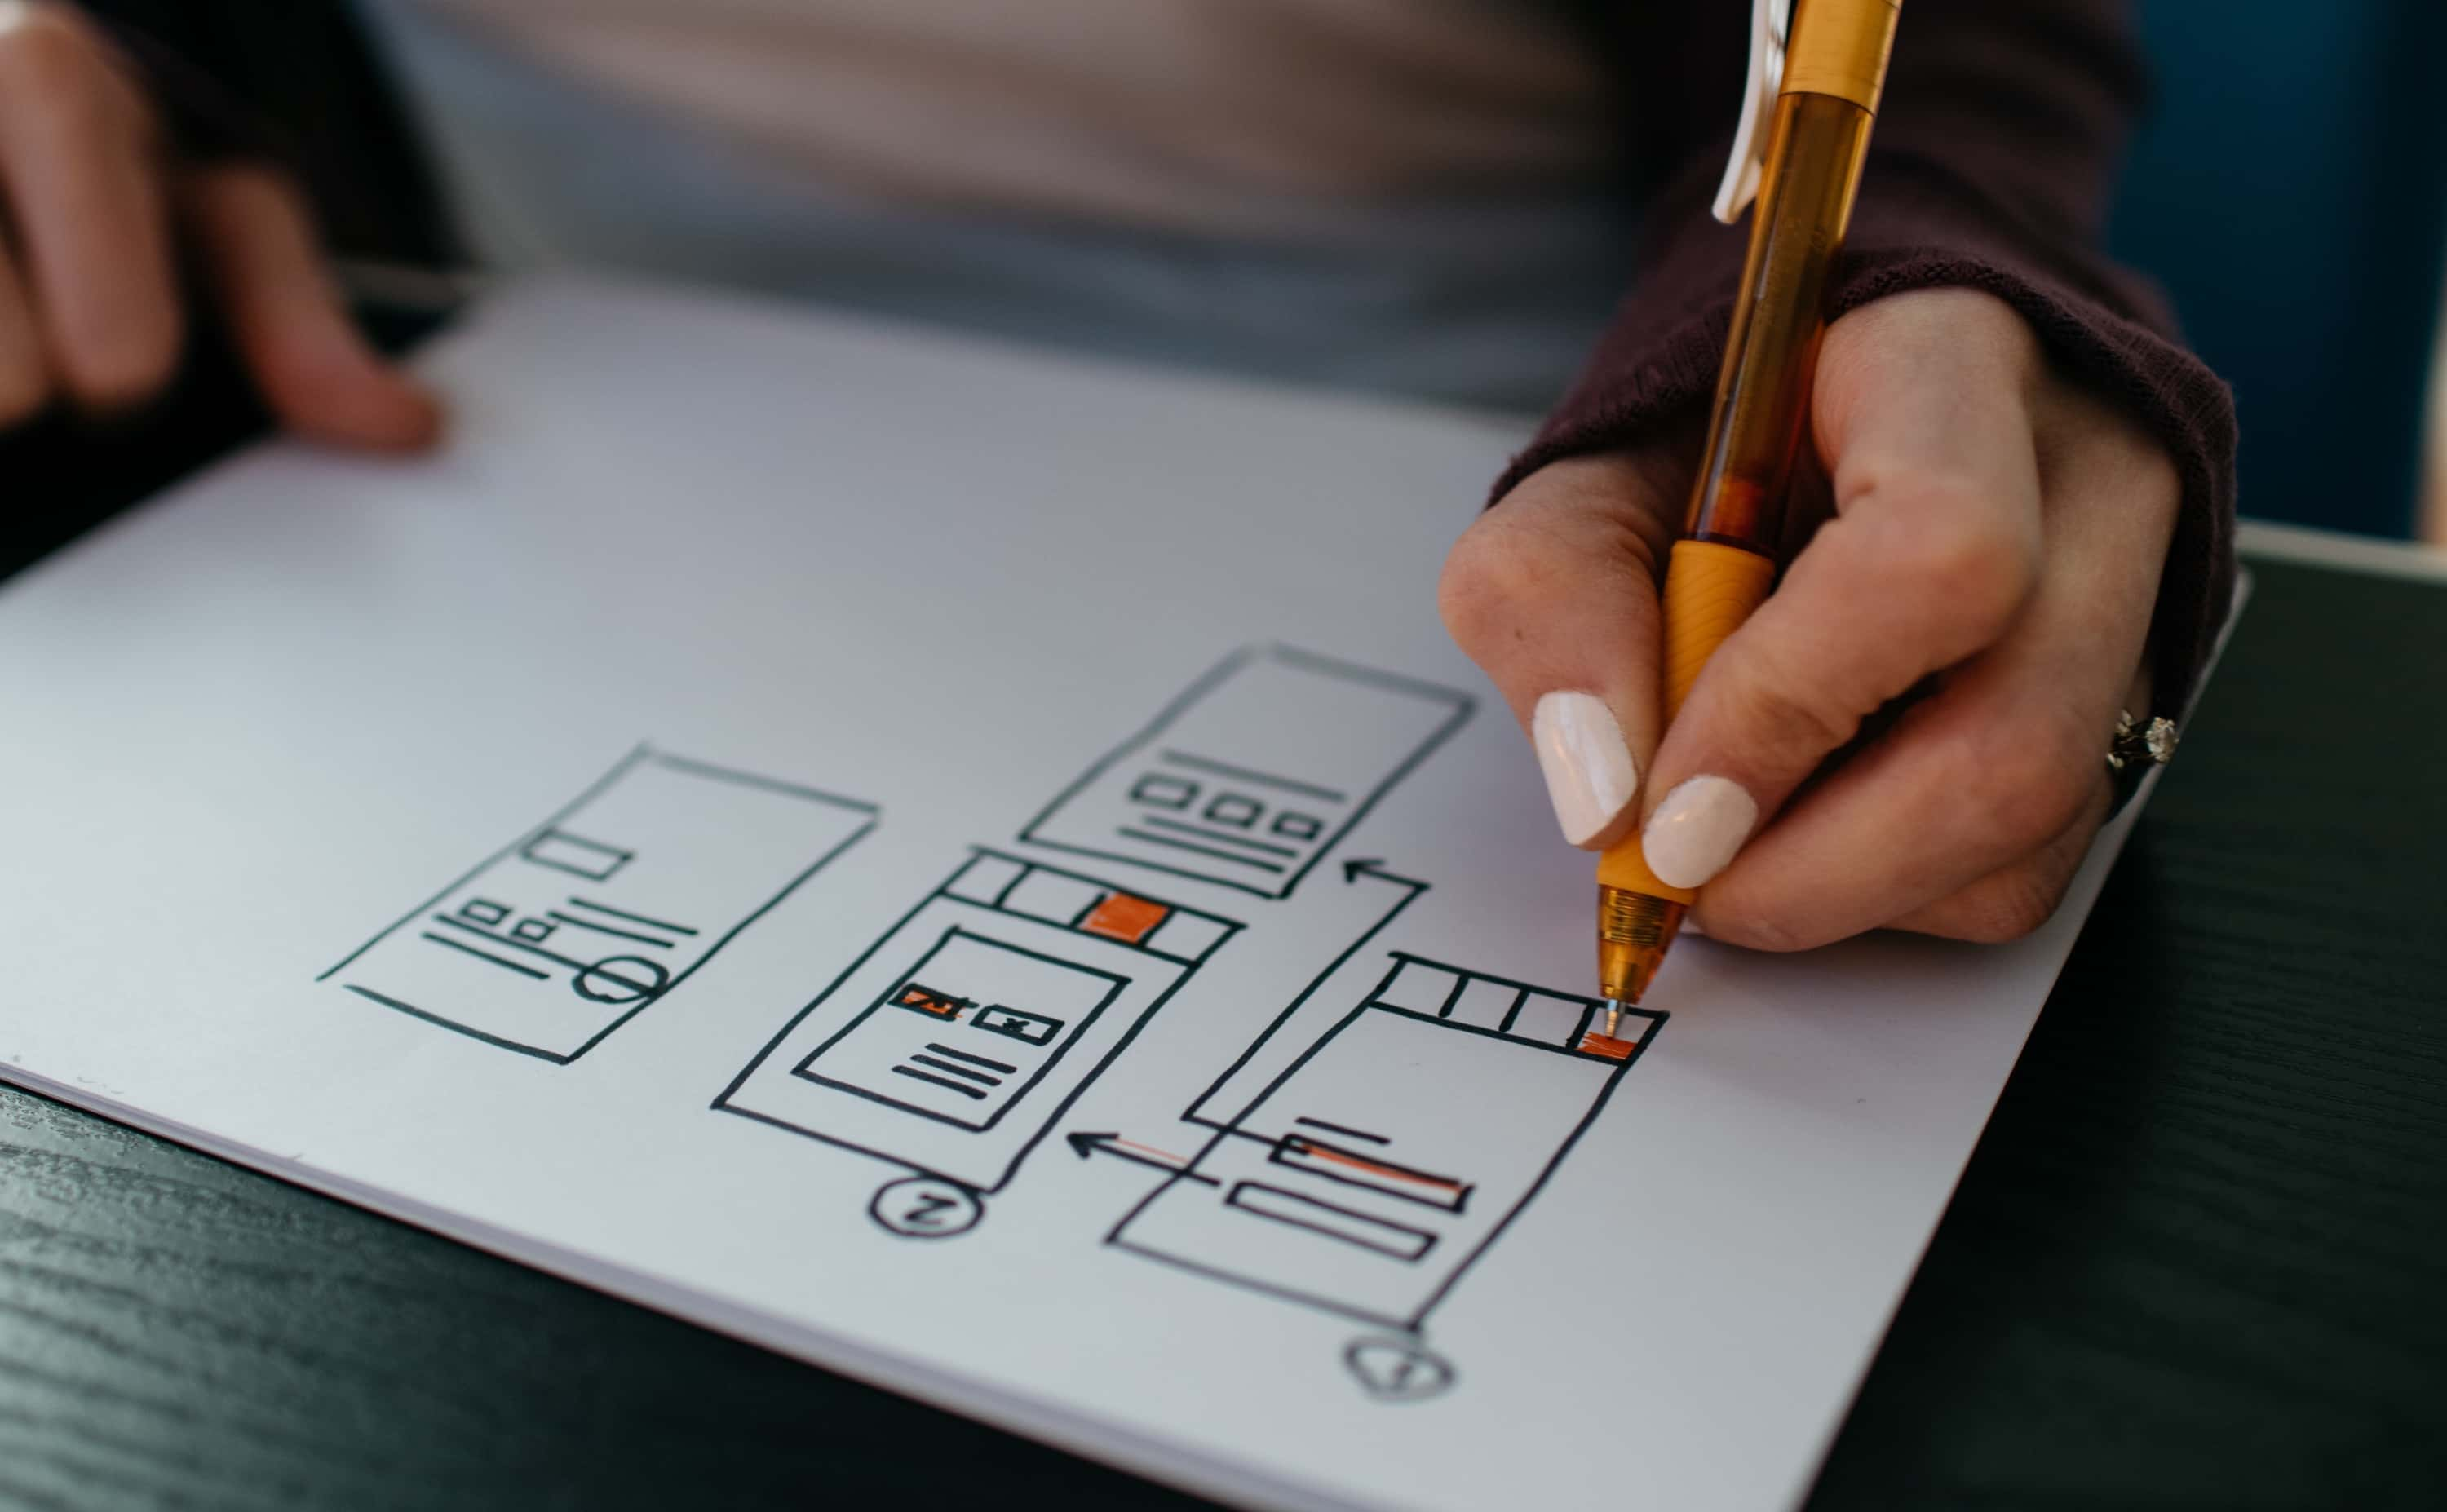 A person draws the checkout customer journey for a website.